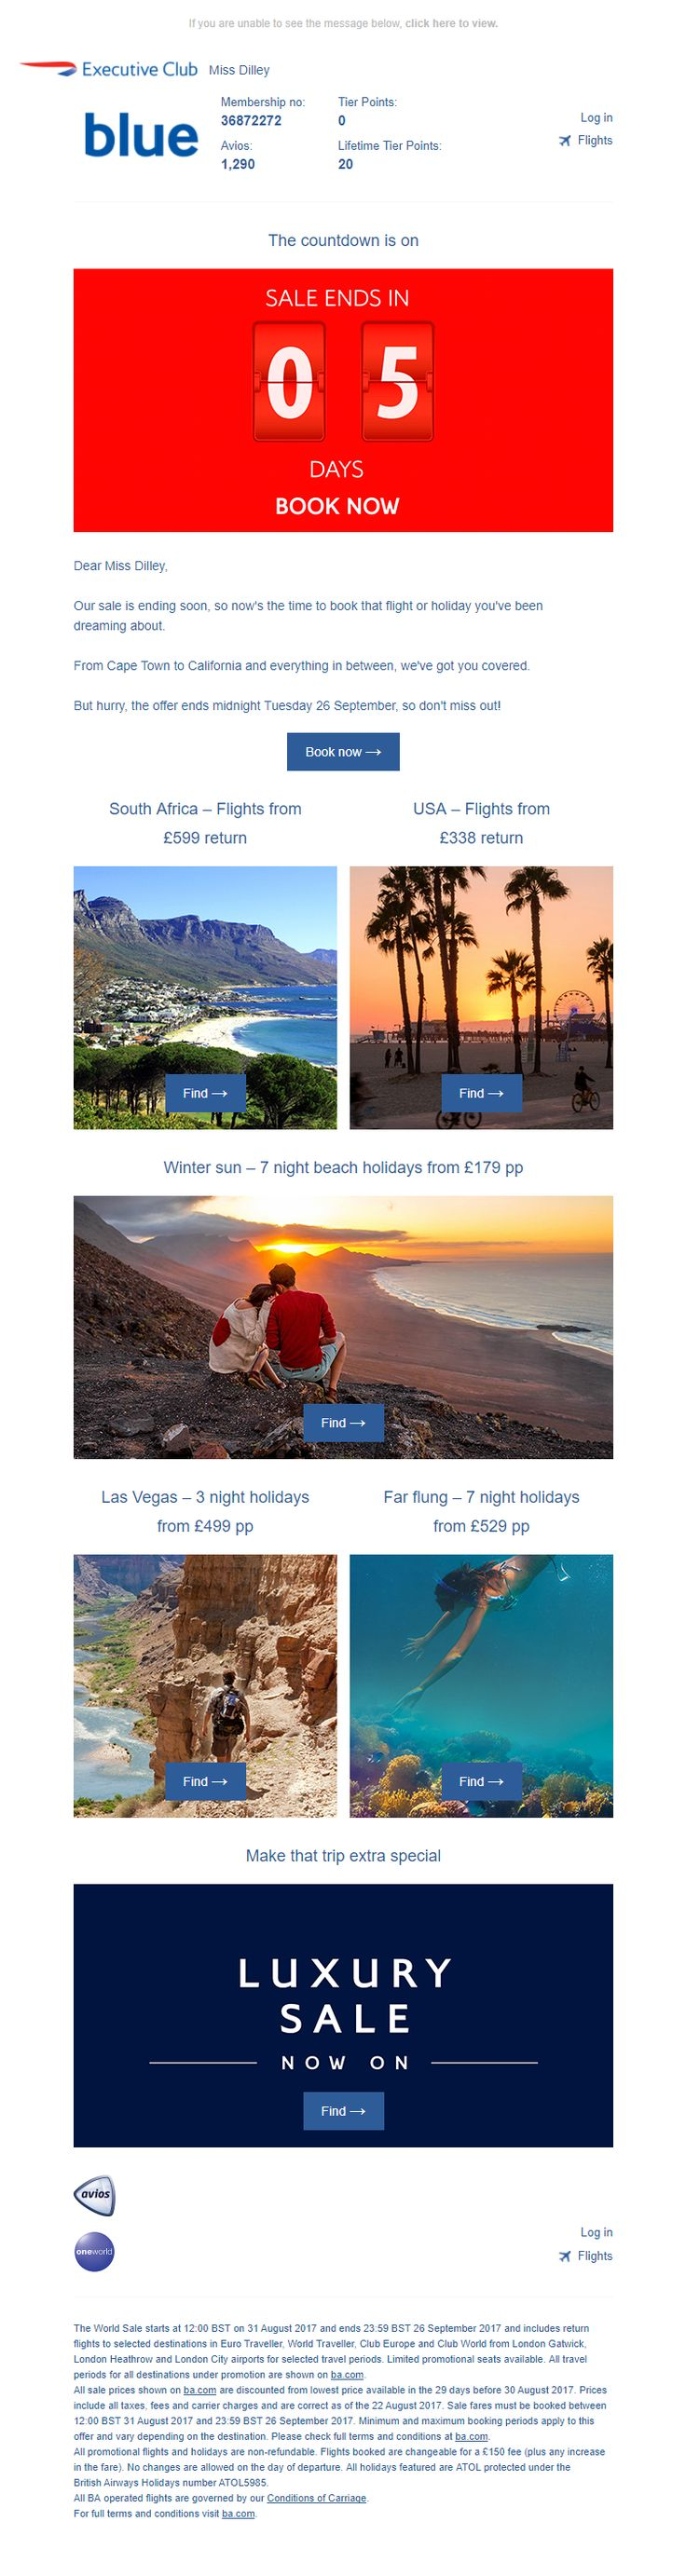 End of Sale Email with Recommendations and Countdown Timer from British Airways #EmailMarketing #Email #Marketing #Product #Recommendations #Countdown #Timer #Travel #Holiday